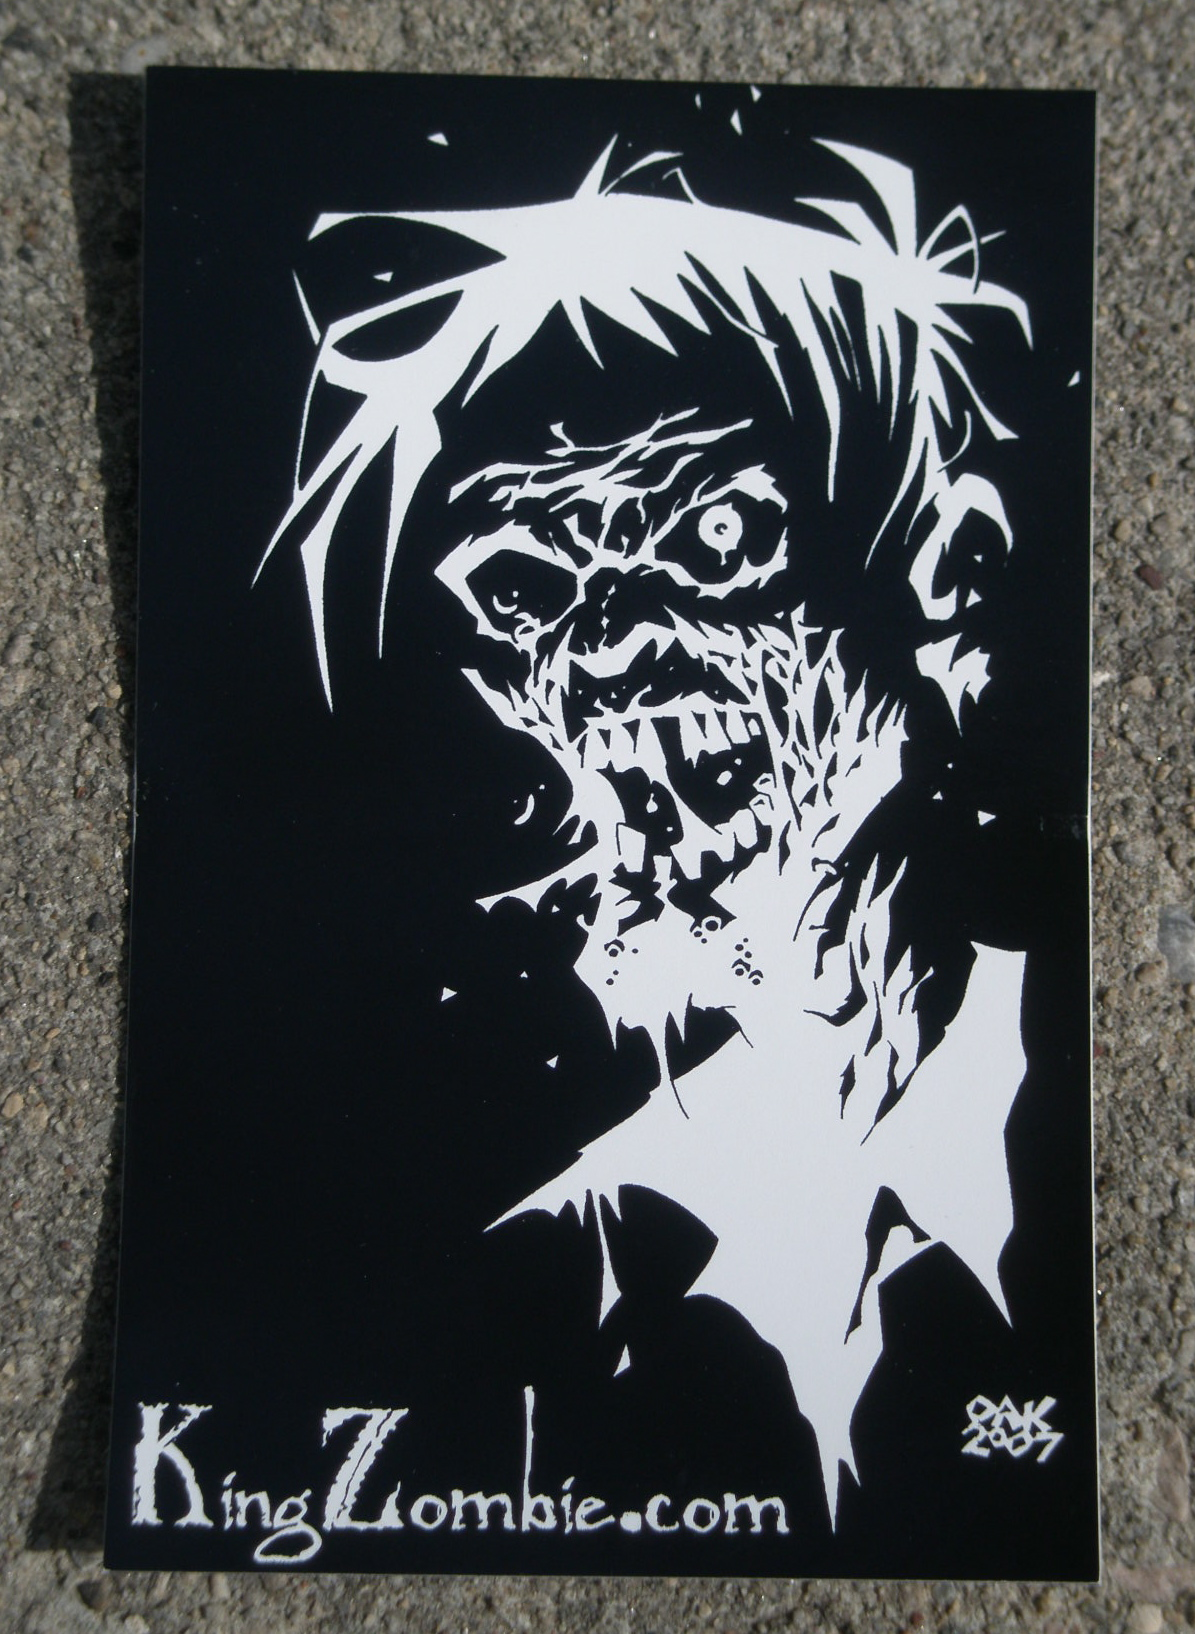 """Zombie"" Head Sticker by Shane Oakley 4.25"" x 2.75"" Sticker"